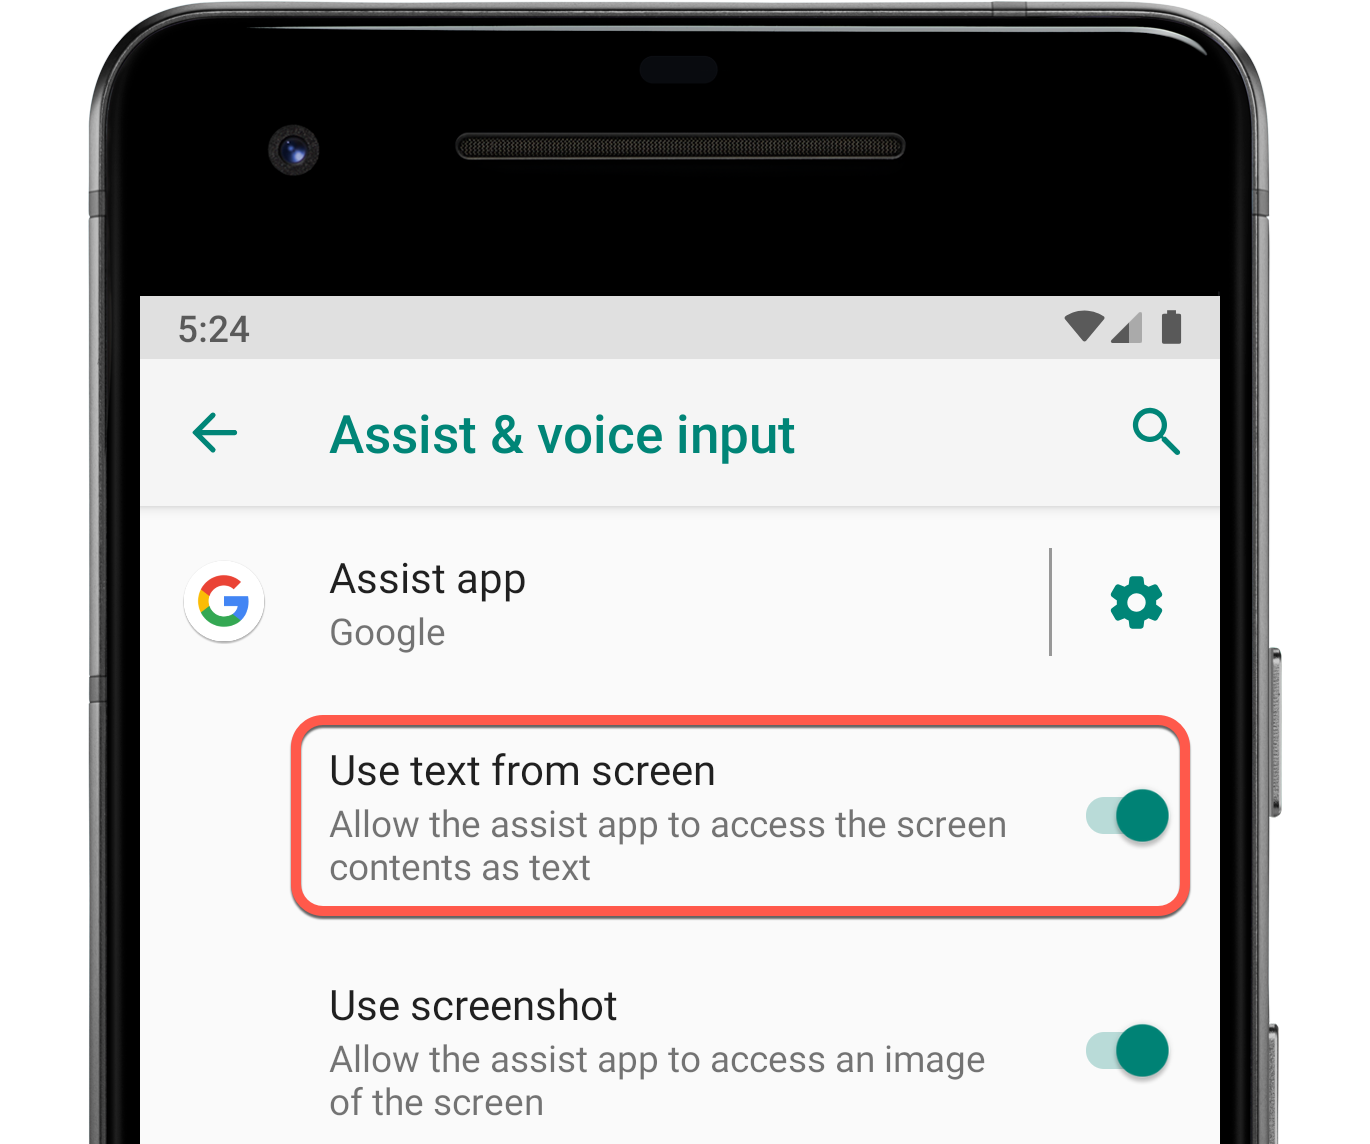 In device settings, users must enable the 'Use text from screen'             for foreground app invocation to work.